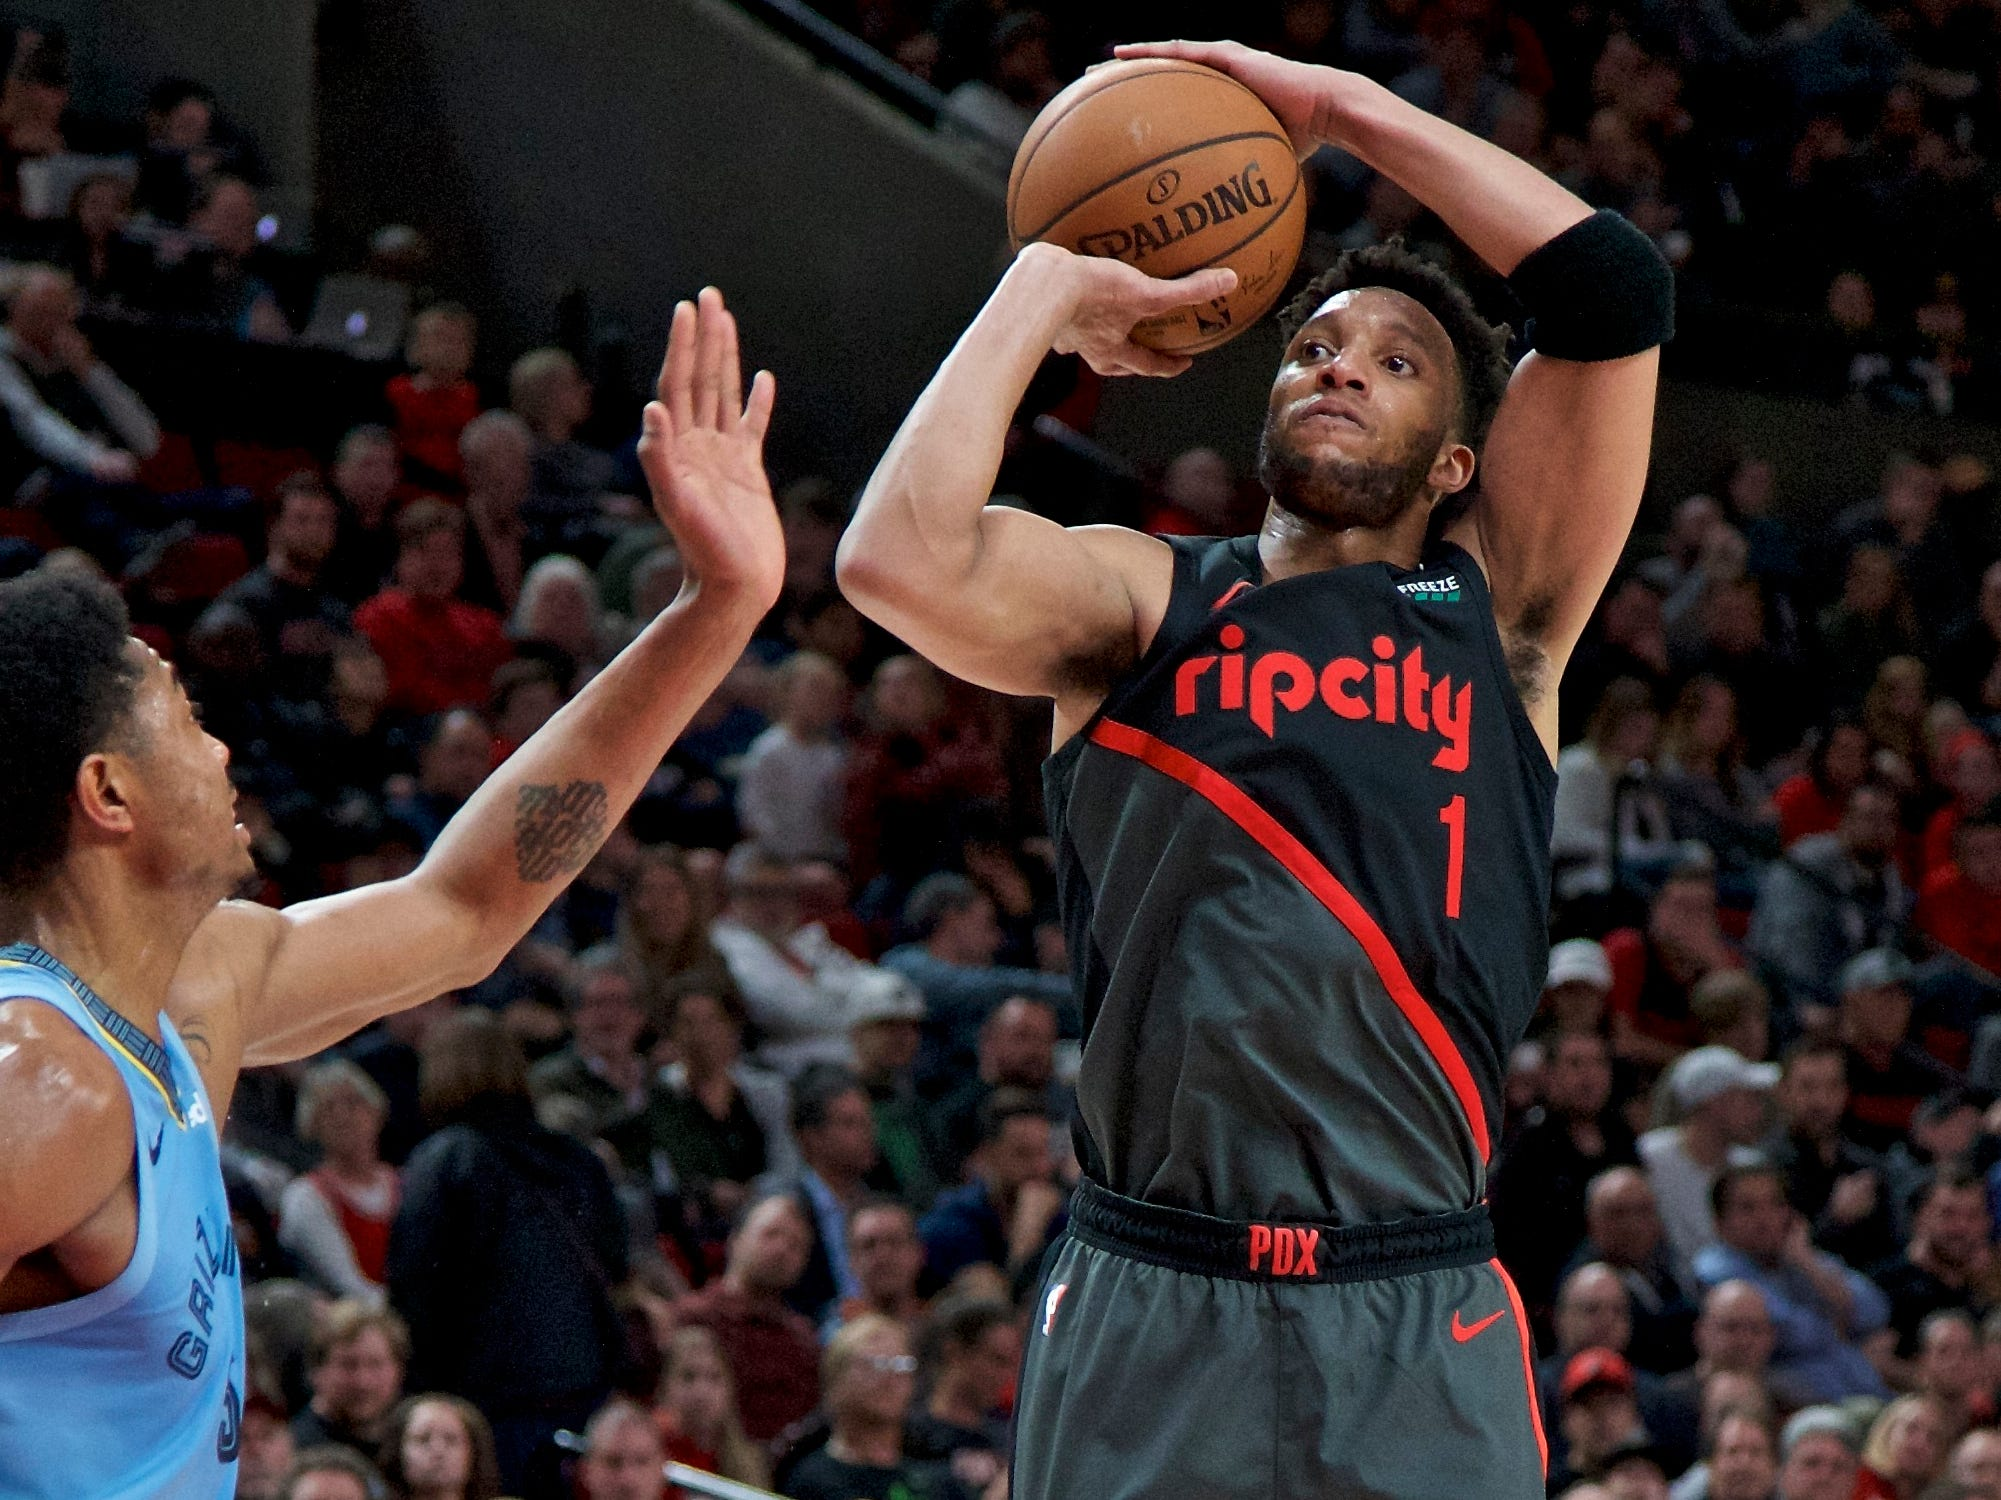 117. Evan Turner, Trail Blazers (April 3): 13 points, 12 rebounds, 11 assists in 116-89 win over Grizzlies (second of season).